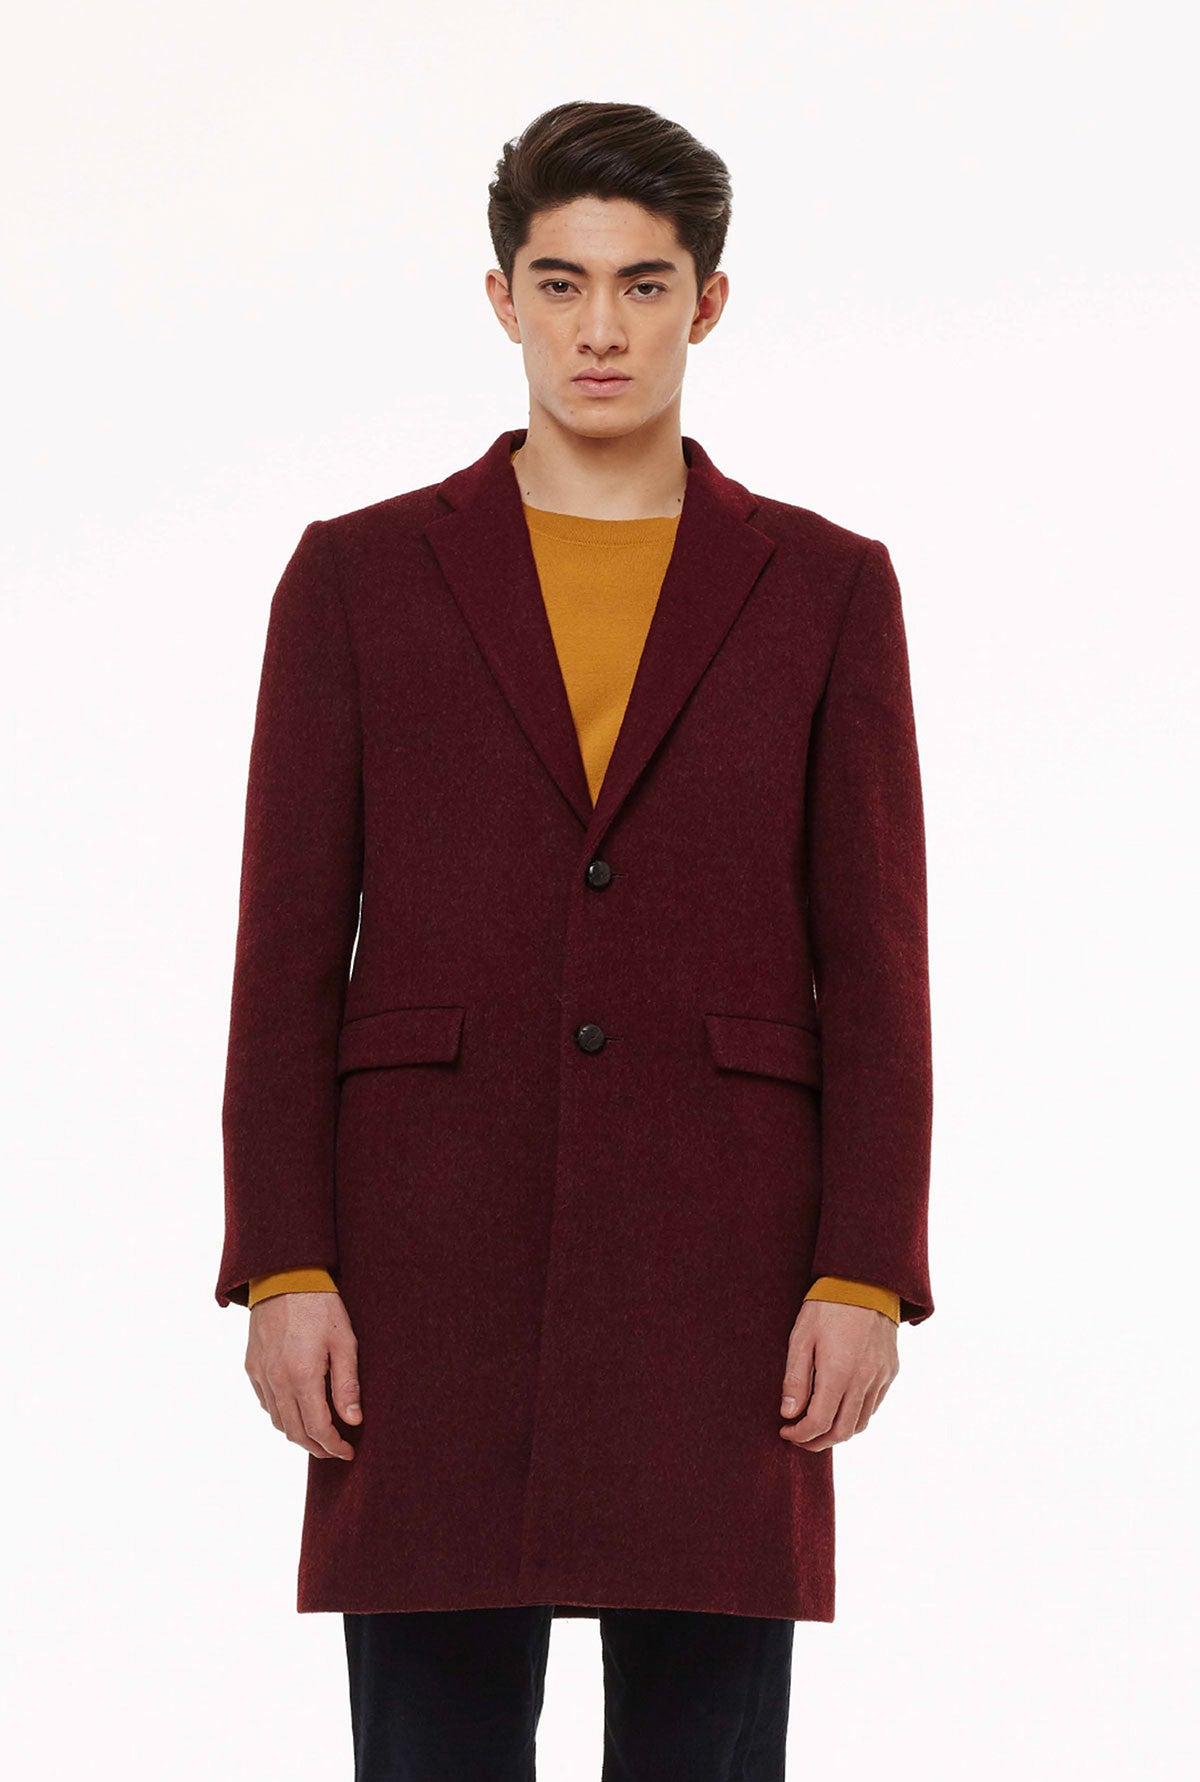 Two-buttons coat in loden fabric.